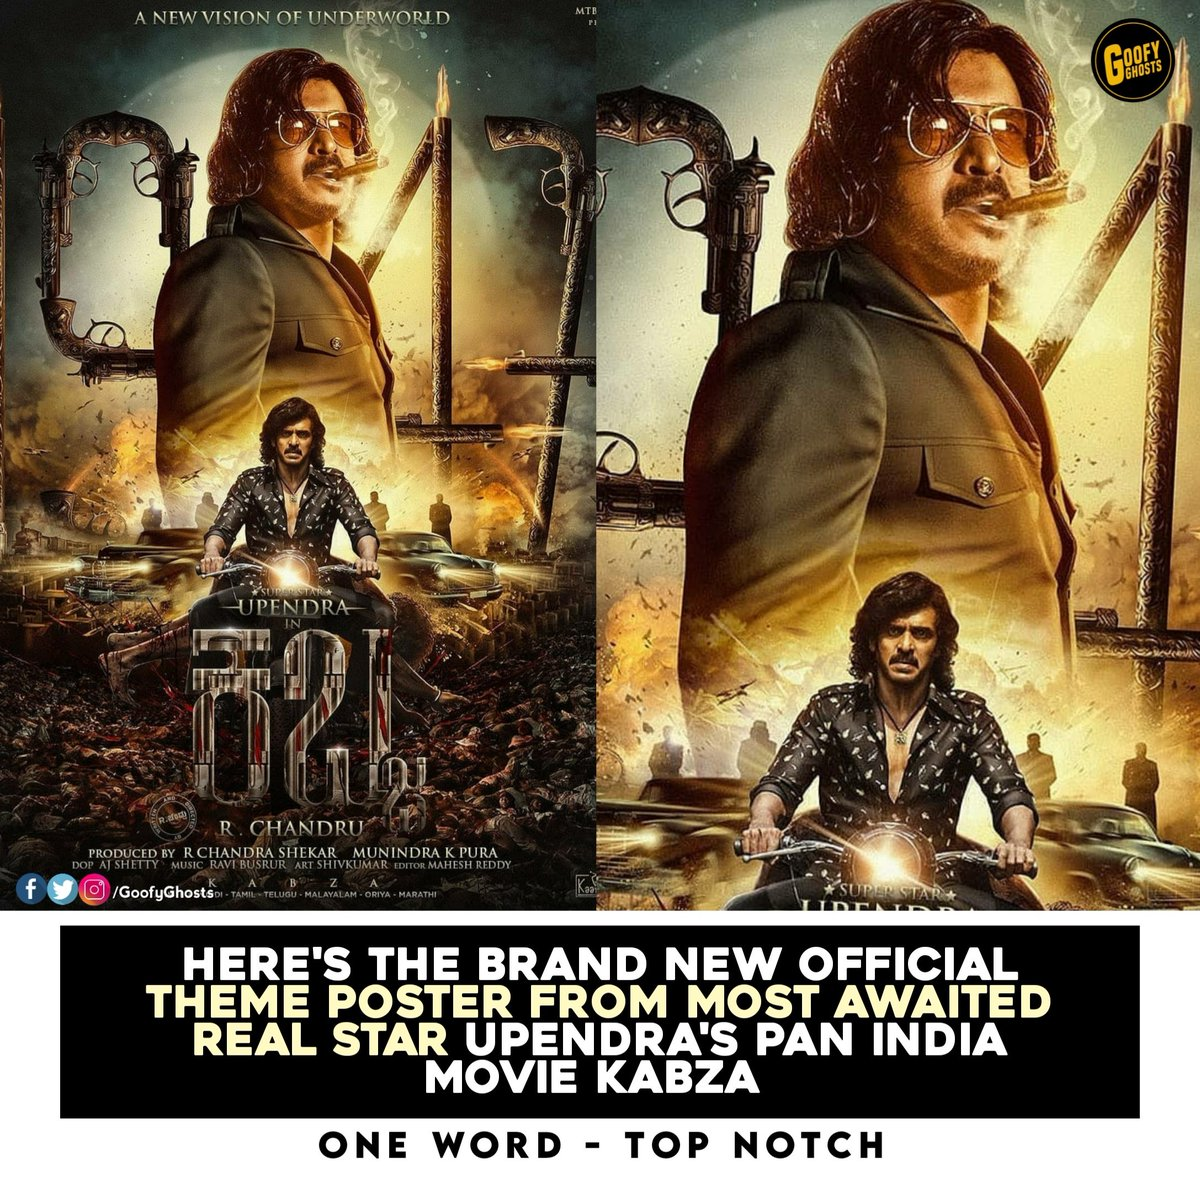 #Kabza movie team exciting audience through the level of making if lit 🔥 👉  https://t.co/nC6HY6gRgM  #kabzamovie @nimmaupendra @rchandru_movies @BasrurRavi https://t.co/3oX7frRT30